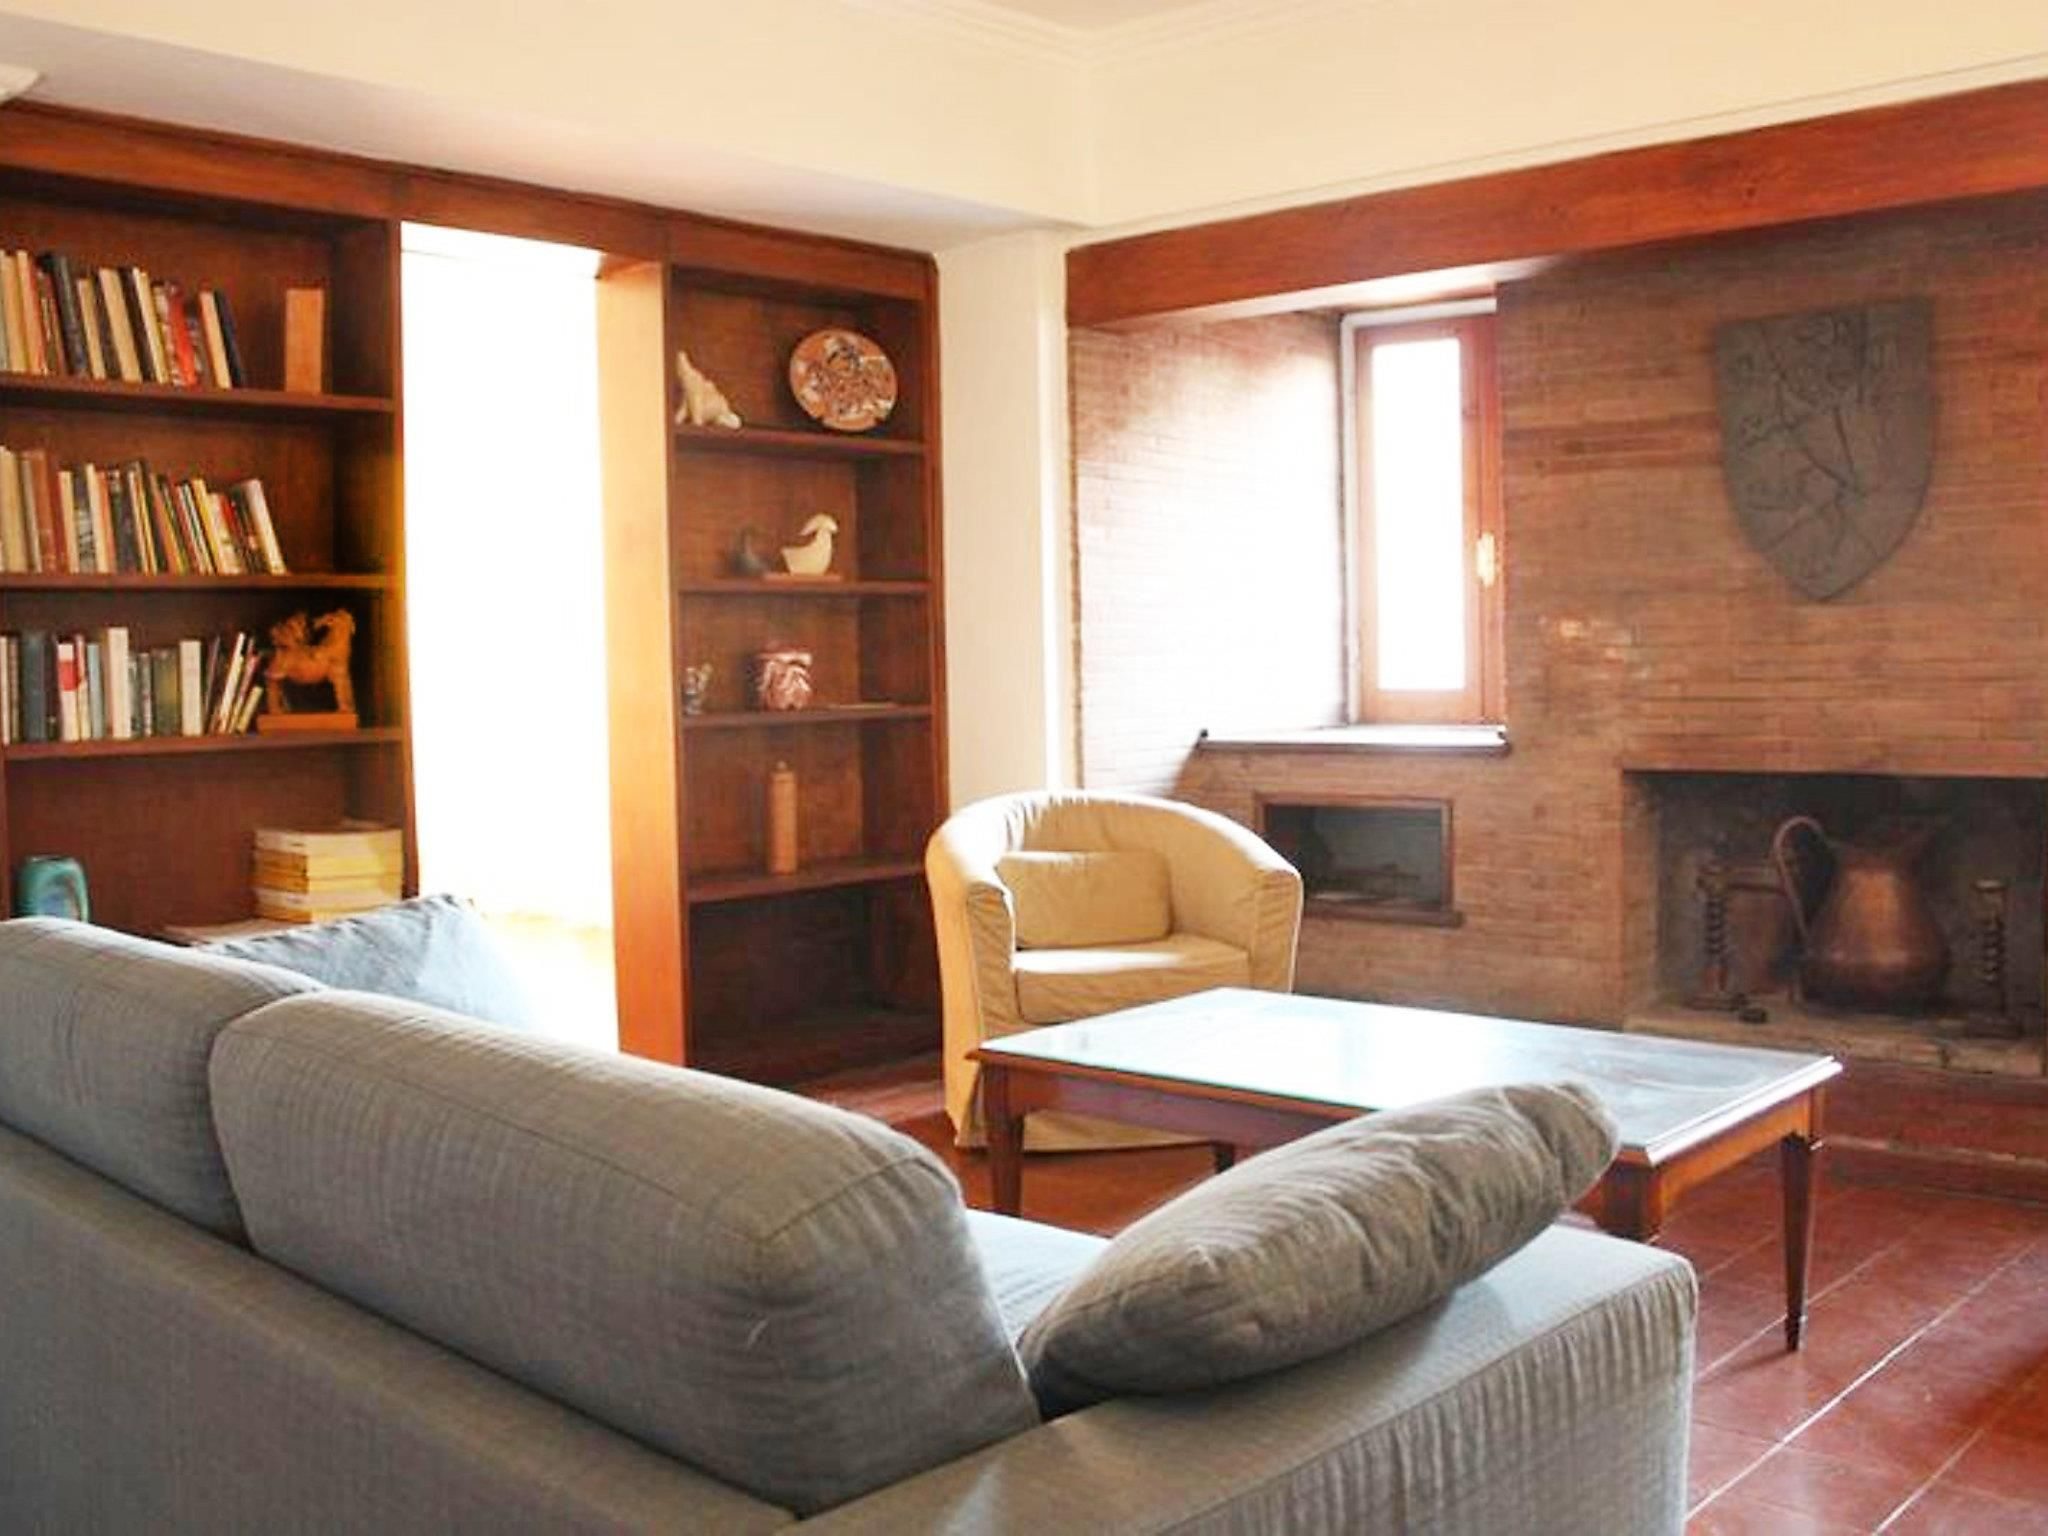 Rome Giulia View 2 Bedroom Apartment Italy, Europe Giulia View 2 Bedroom Apartment is conveniently located in the popular Navona area. The hotel offers guests a range of services and amenities designed to provide comfort and convenience. Facilities like family room, elevator are readily available for you to enjoy. Sofa, air conditioning, heating, balcony/terrace, television can be found in selected guestrooms. The hotel offers various recreational opportunities. For reliable s...